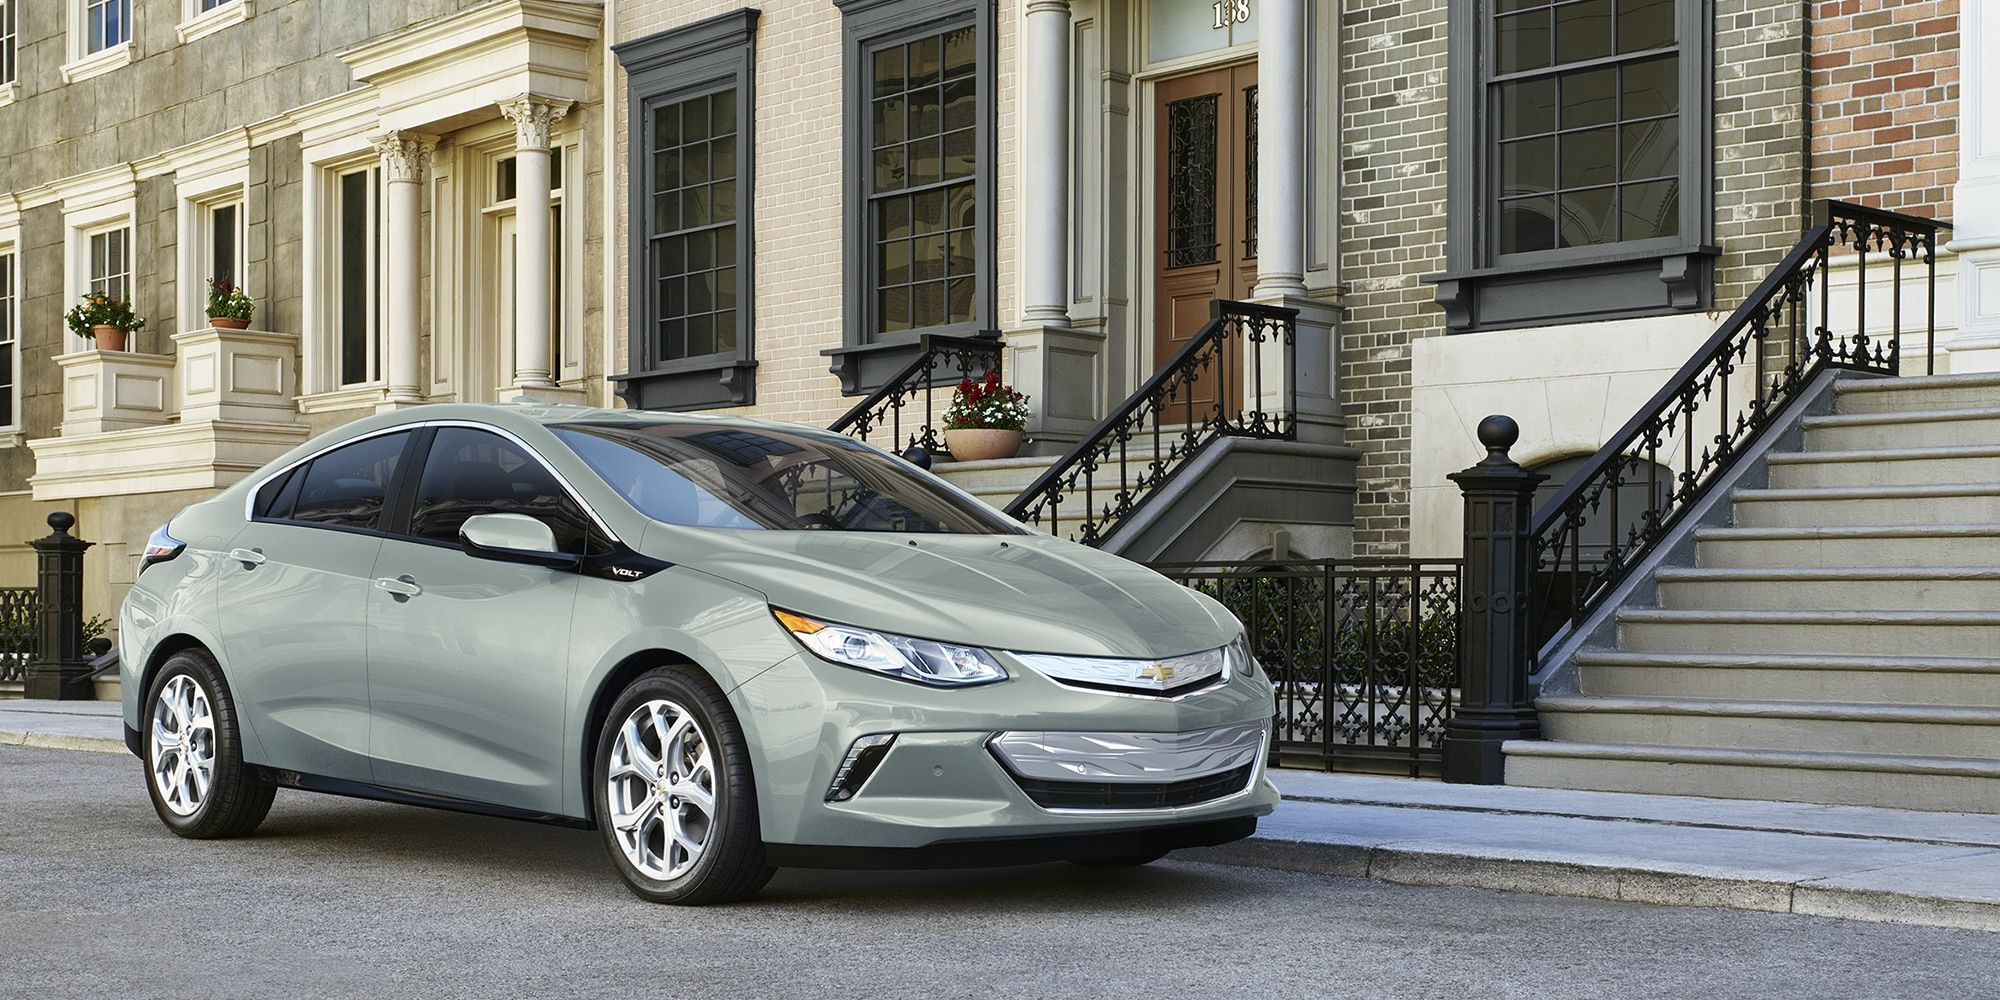 Pin By Bay Ridge Chevrolet On Volt Chevrolet Volt Chevrolet